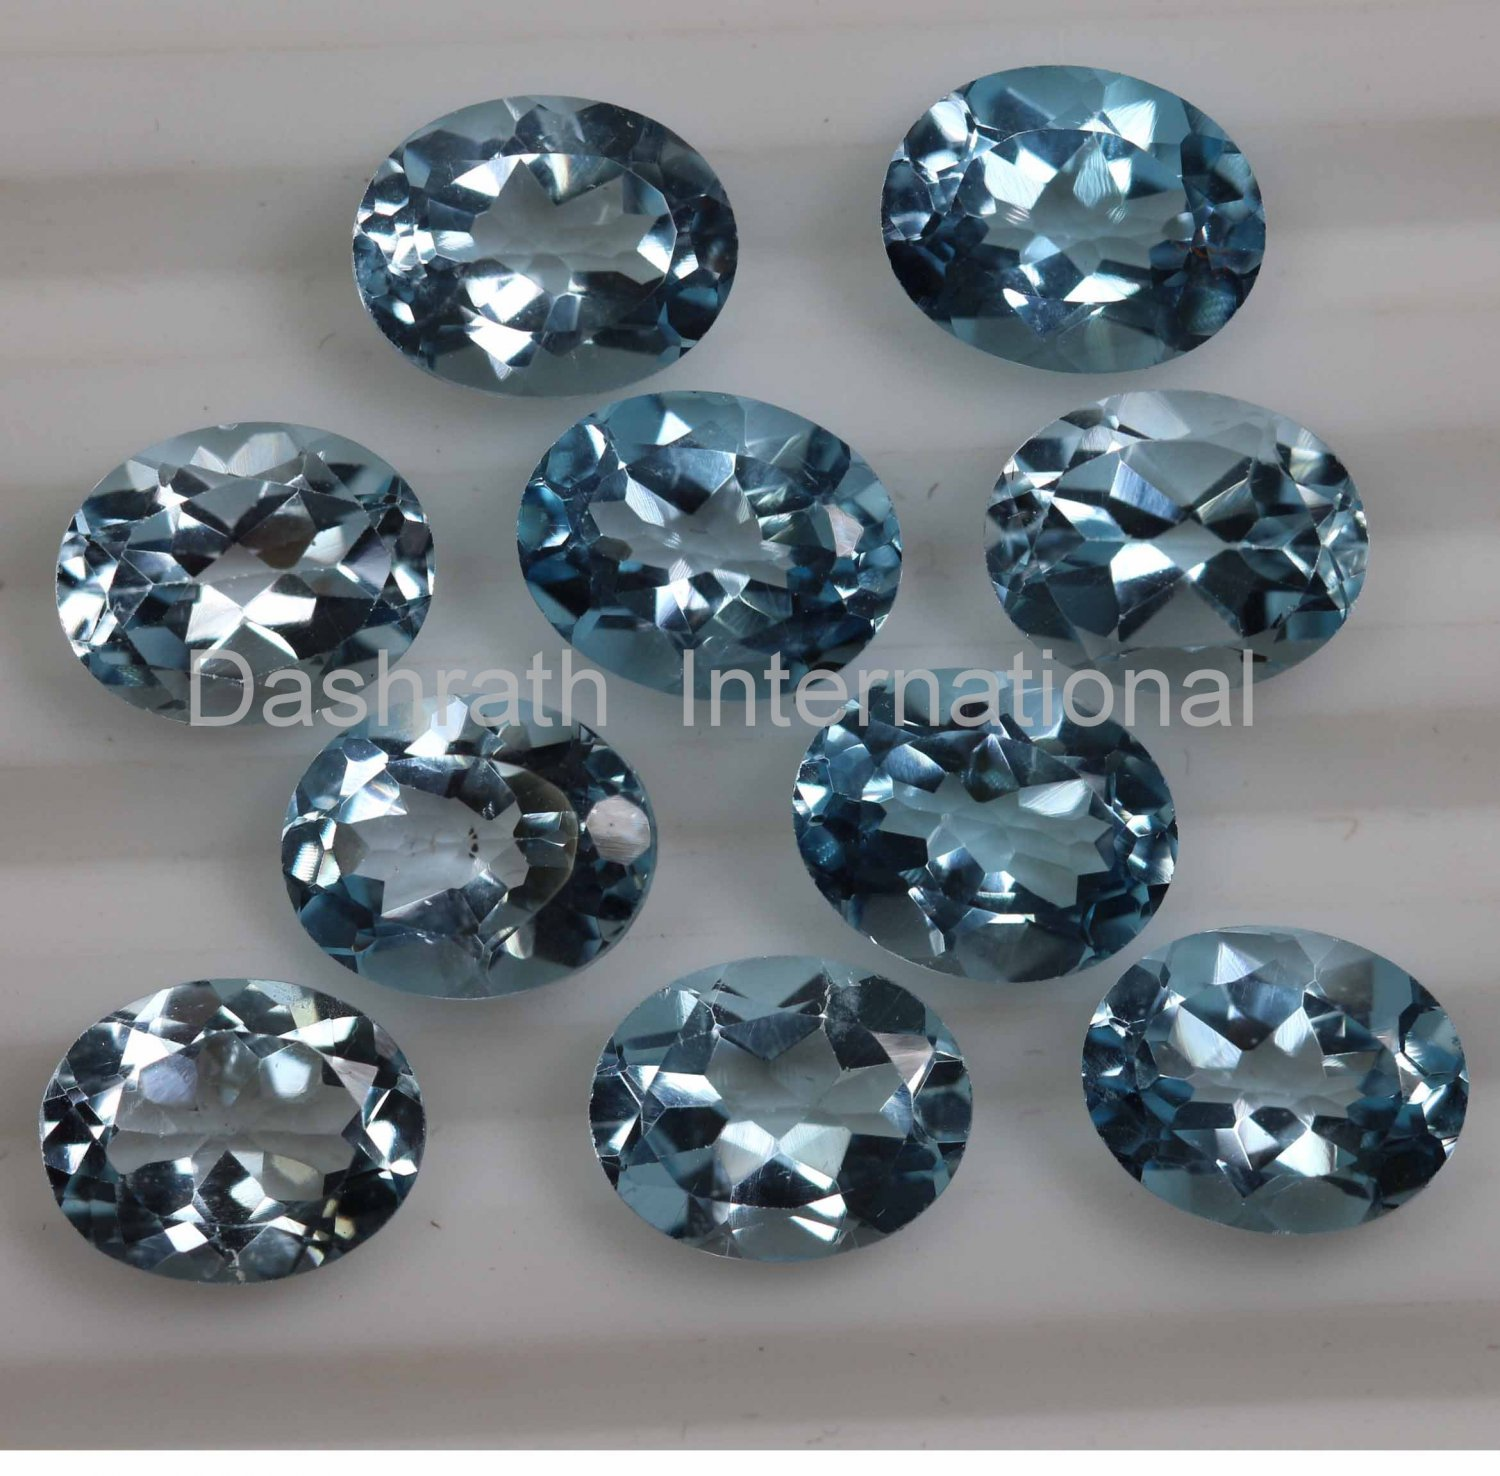 8x6mm Natural Sky Blue Topaz Faceted Cut Oval 1 Piece  Top Quality Loose Gemstone